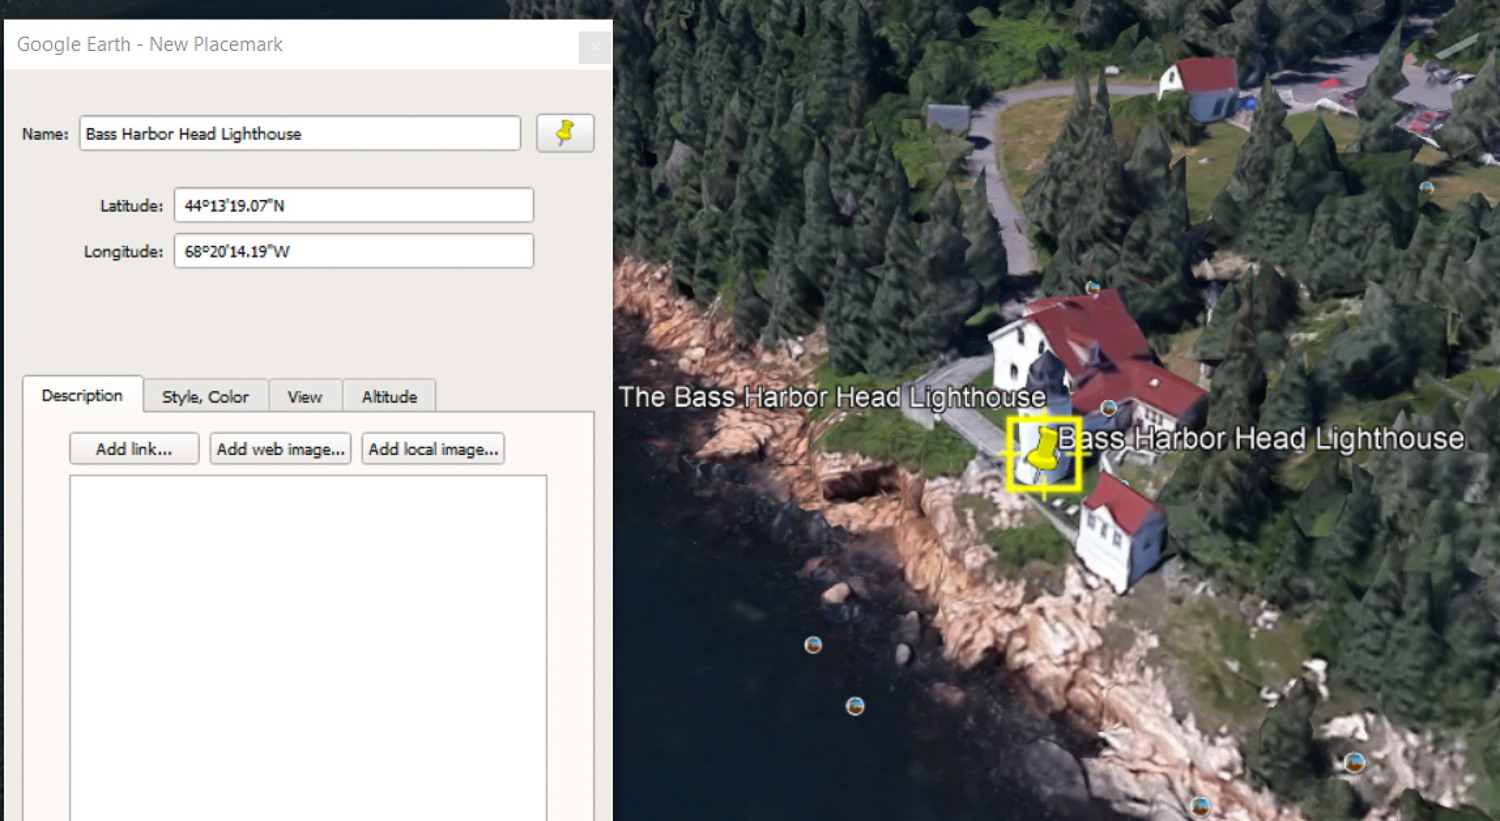 Bass Harbor Head Lighthouse in Google Earth